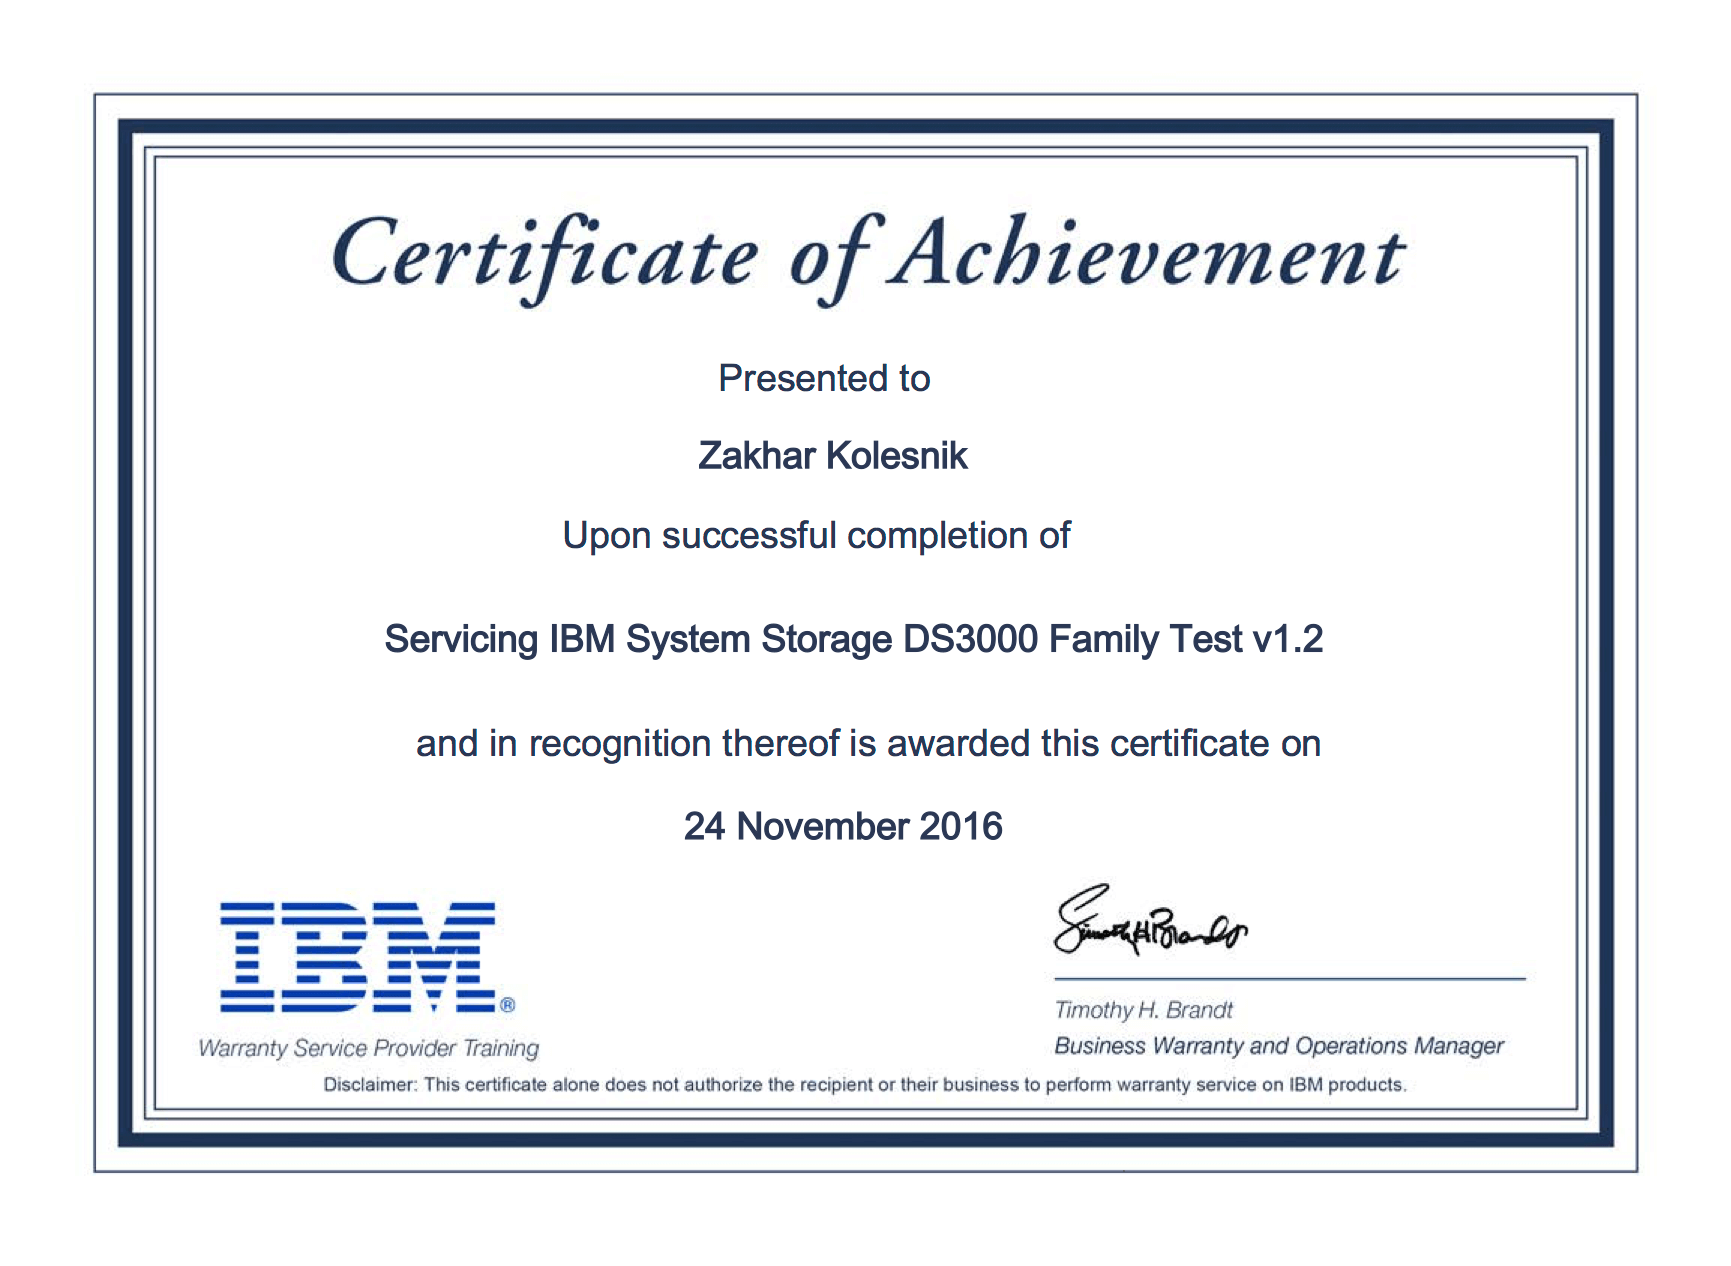 IBM: Servicing IBM System Storage DS3000